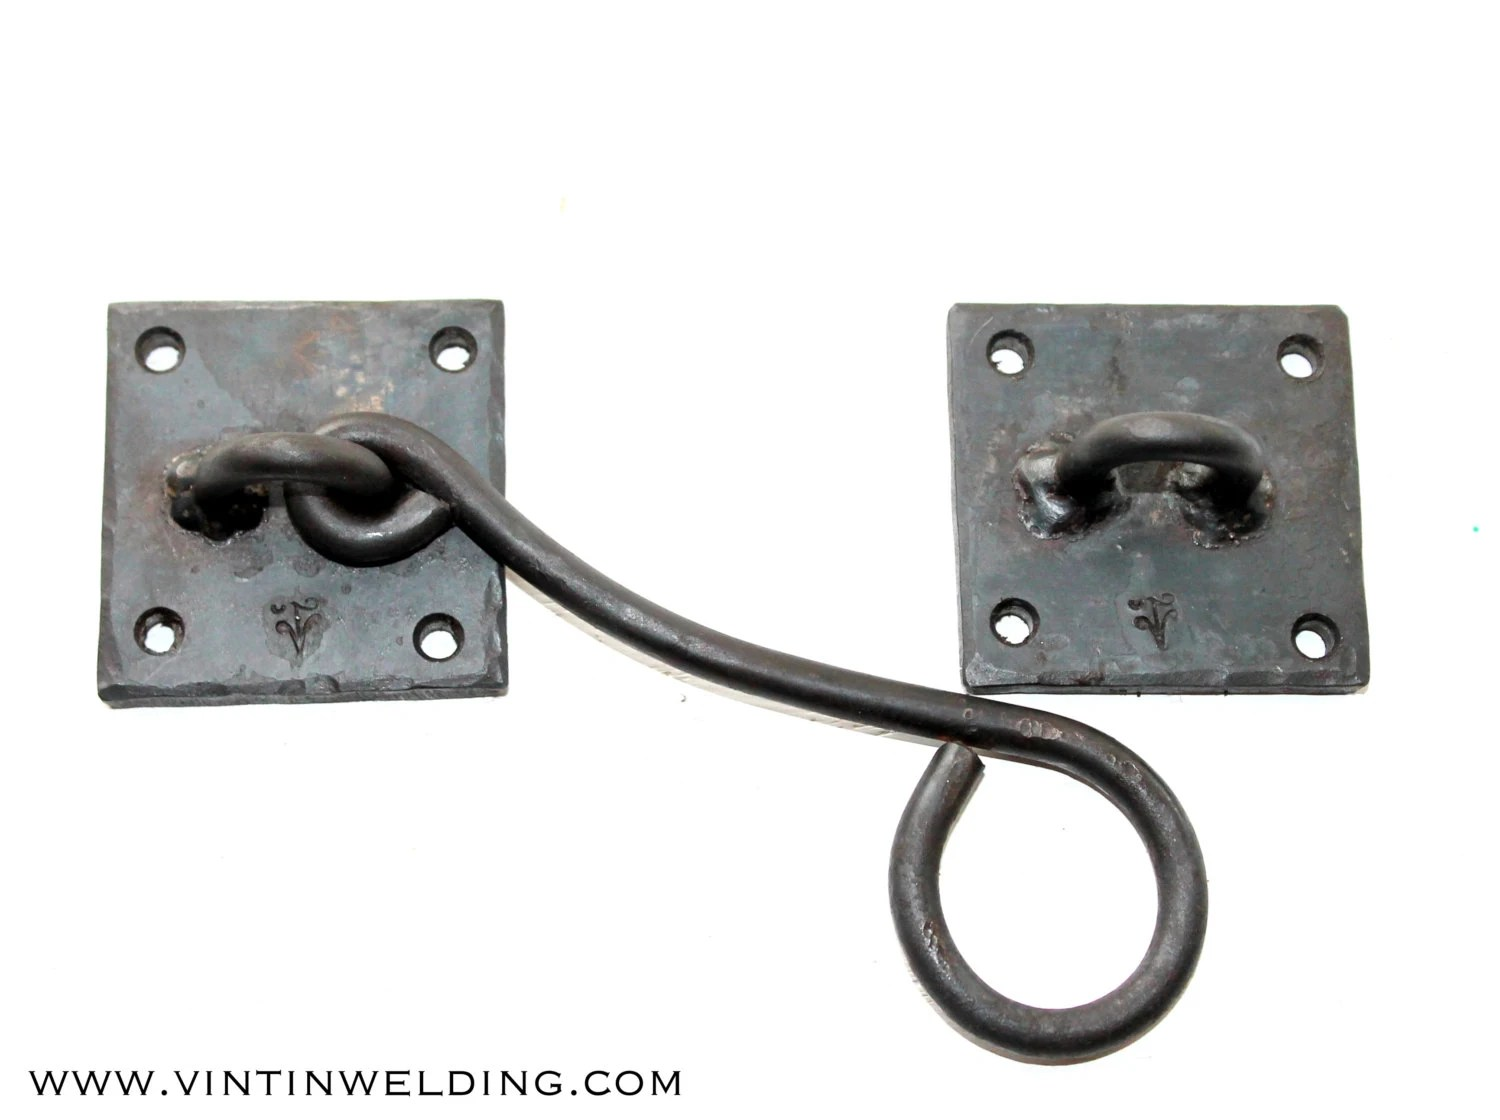 Gate Hardware One Hand Forged Iron Gate Hardware Hasp With Square Base By Vintin